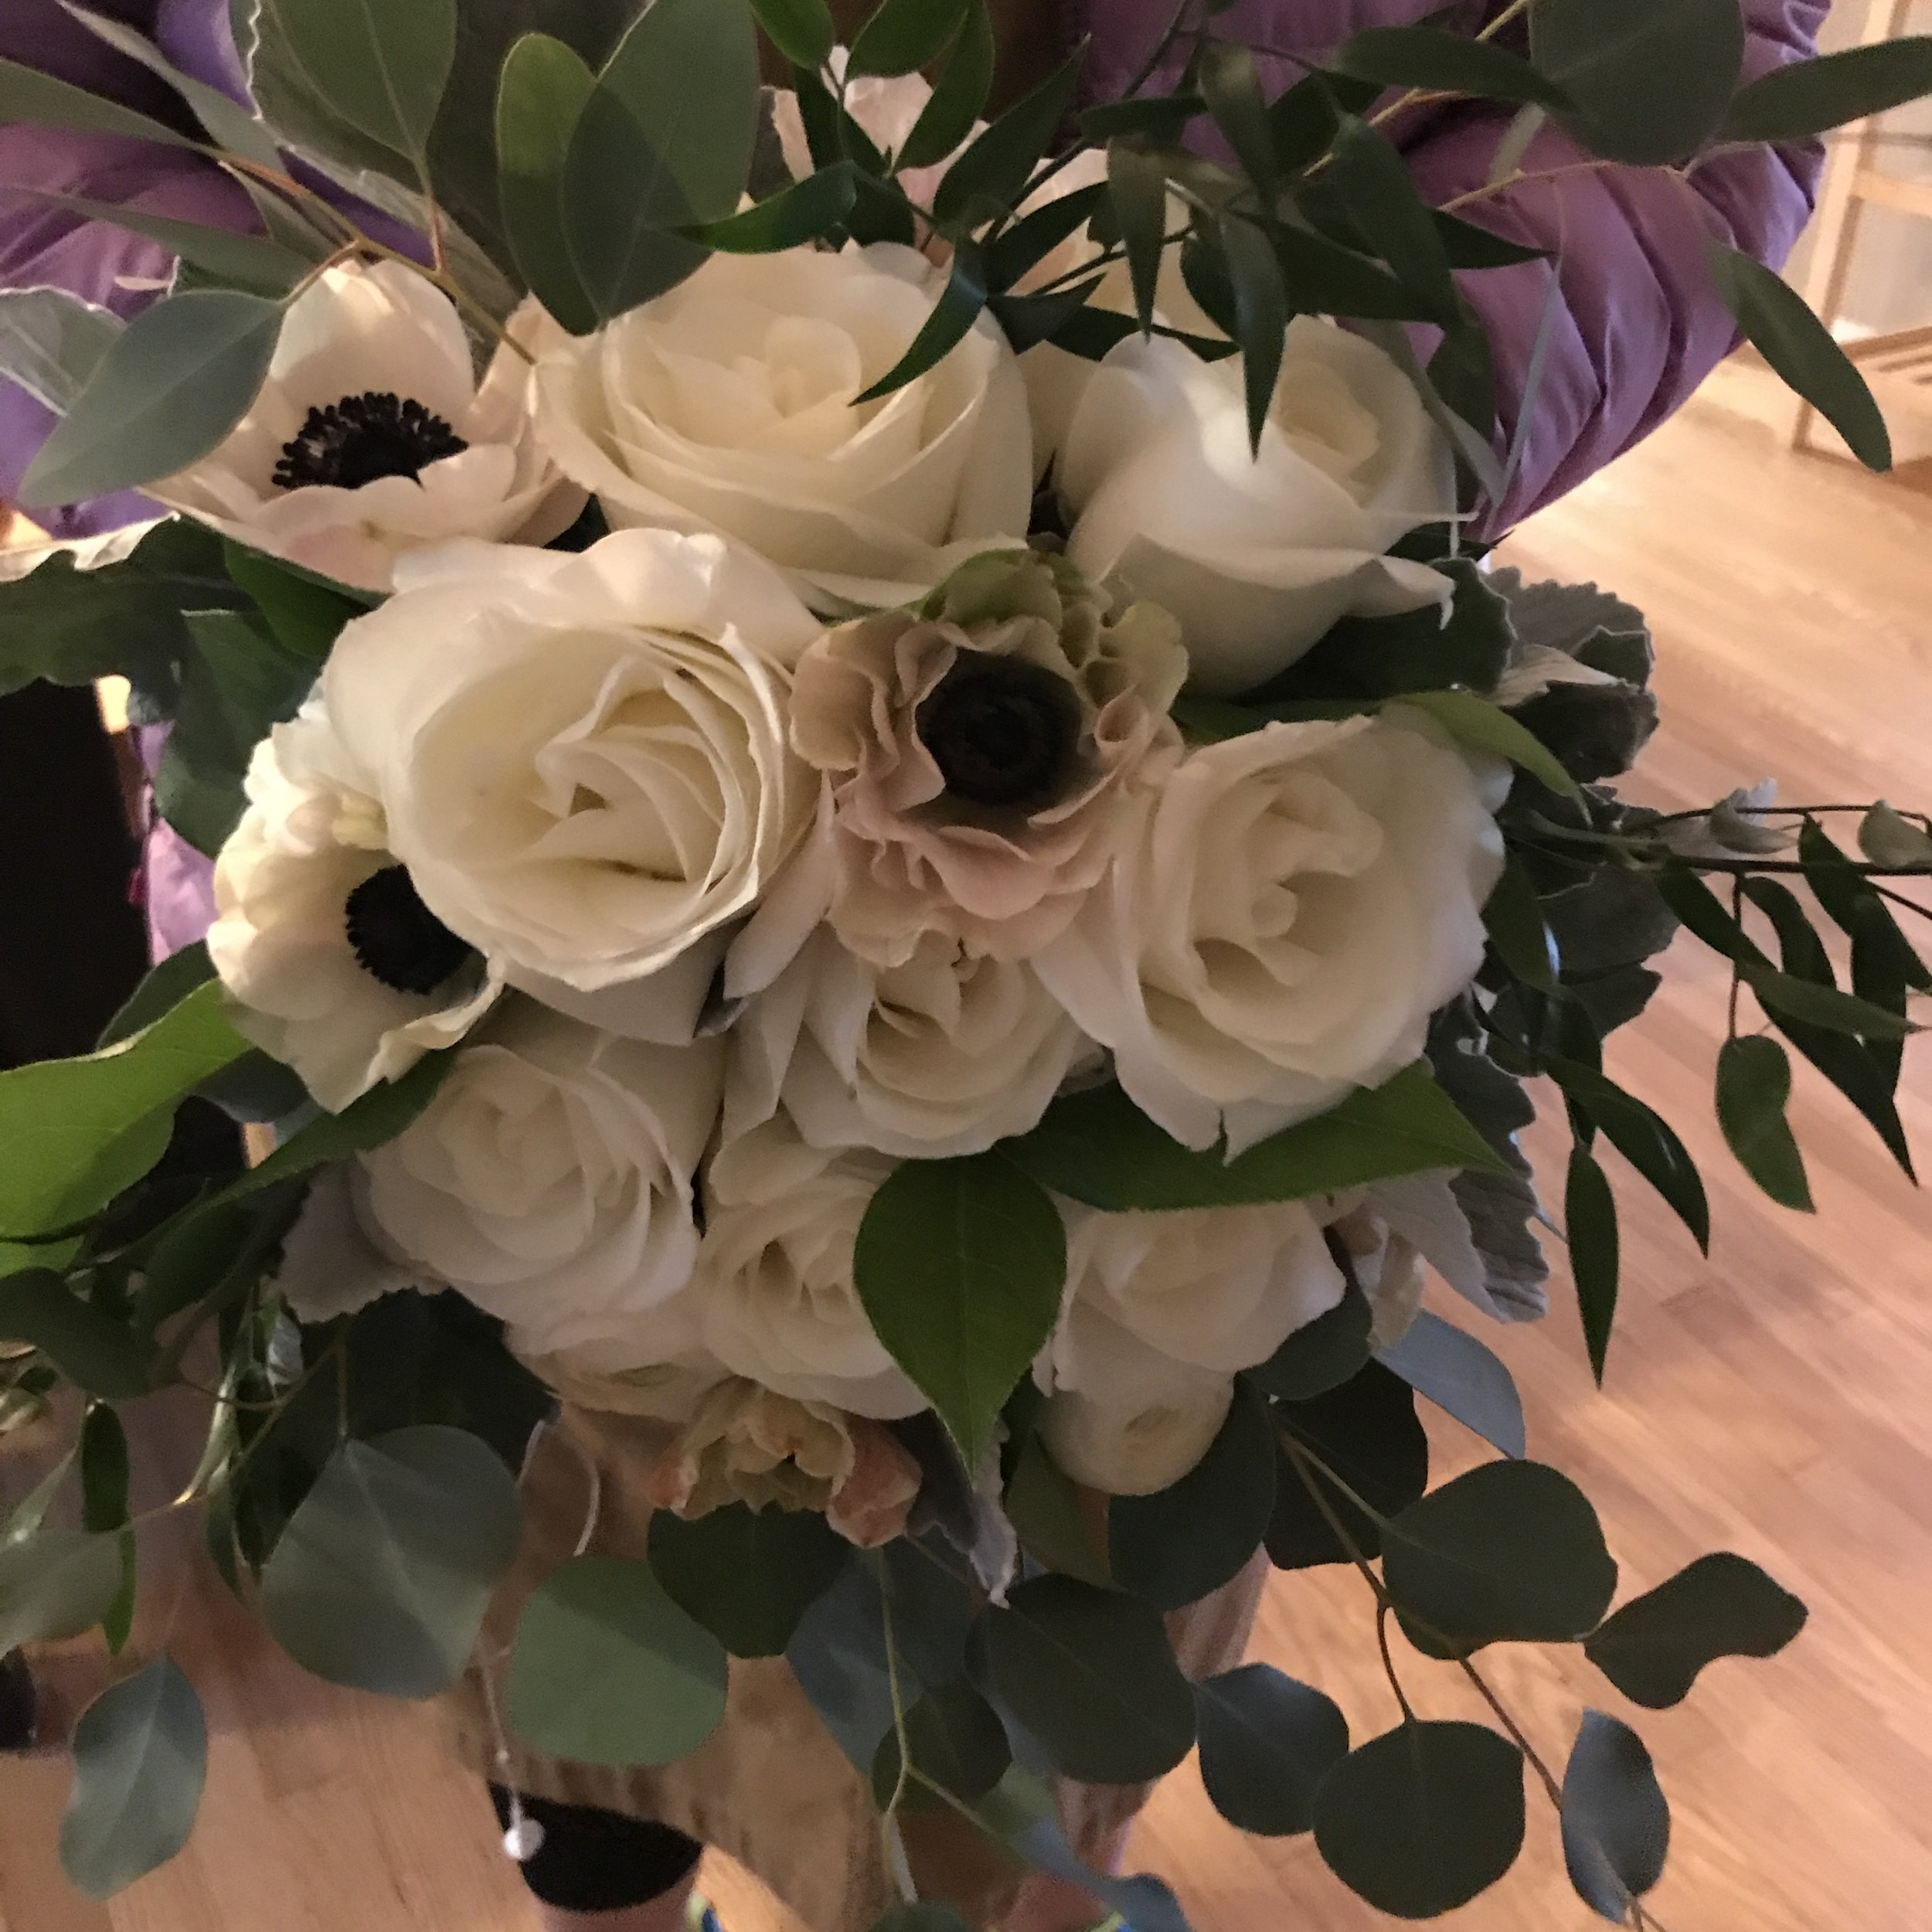 Winter bride's bouquet made with ruscus, silver dollar eucalyptus, white roses, ranunculus, anemone, and dusty miller.